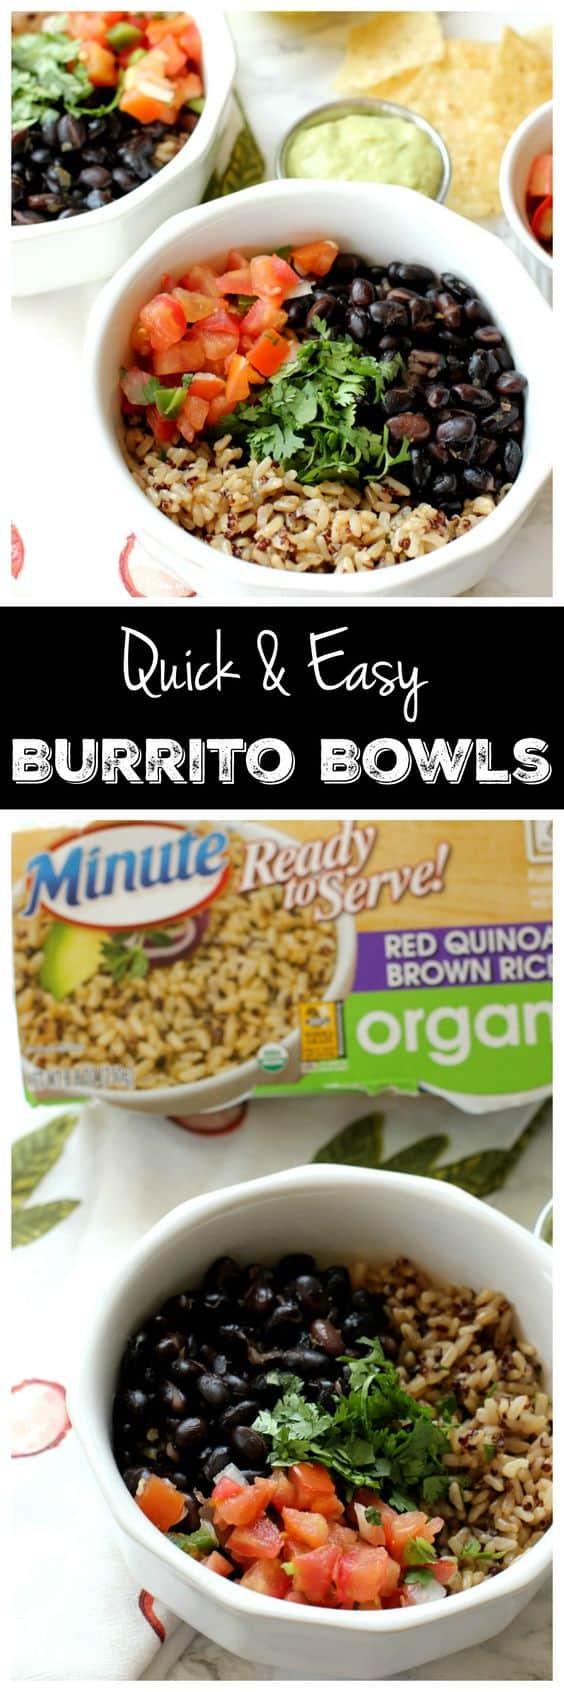 These burrito bowls aren't just delicious, they're SO EASY. You'll literally have lunch ready in 15 minutes flat, I promise! Plus, you'll want to eat the avocado lime sauce off a spoon.